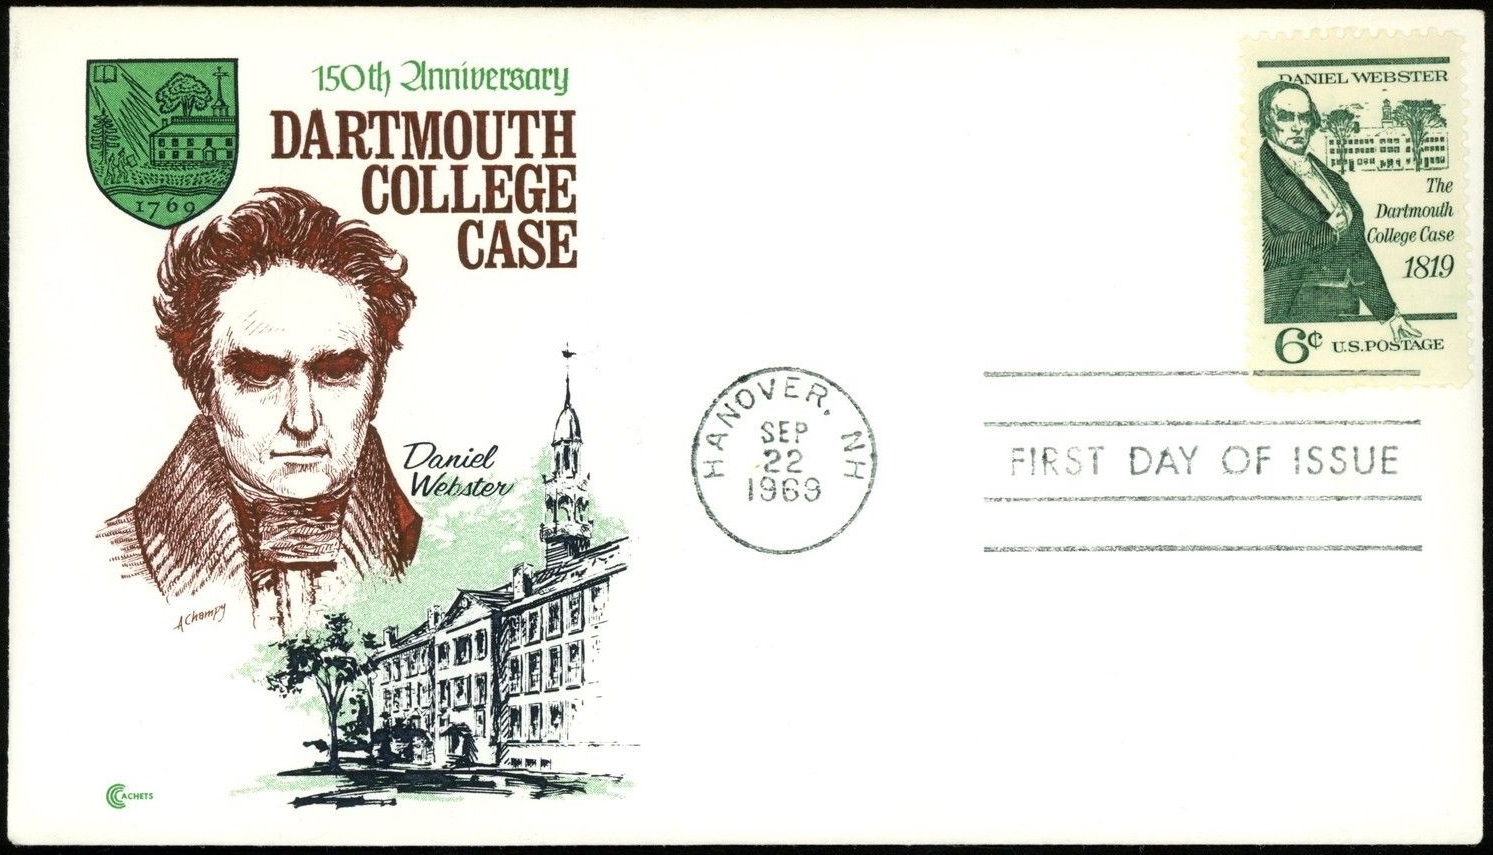 United States - Scott #1380 (1969) first day cover